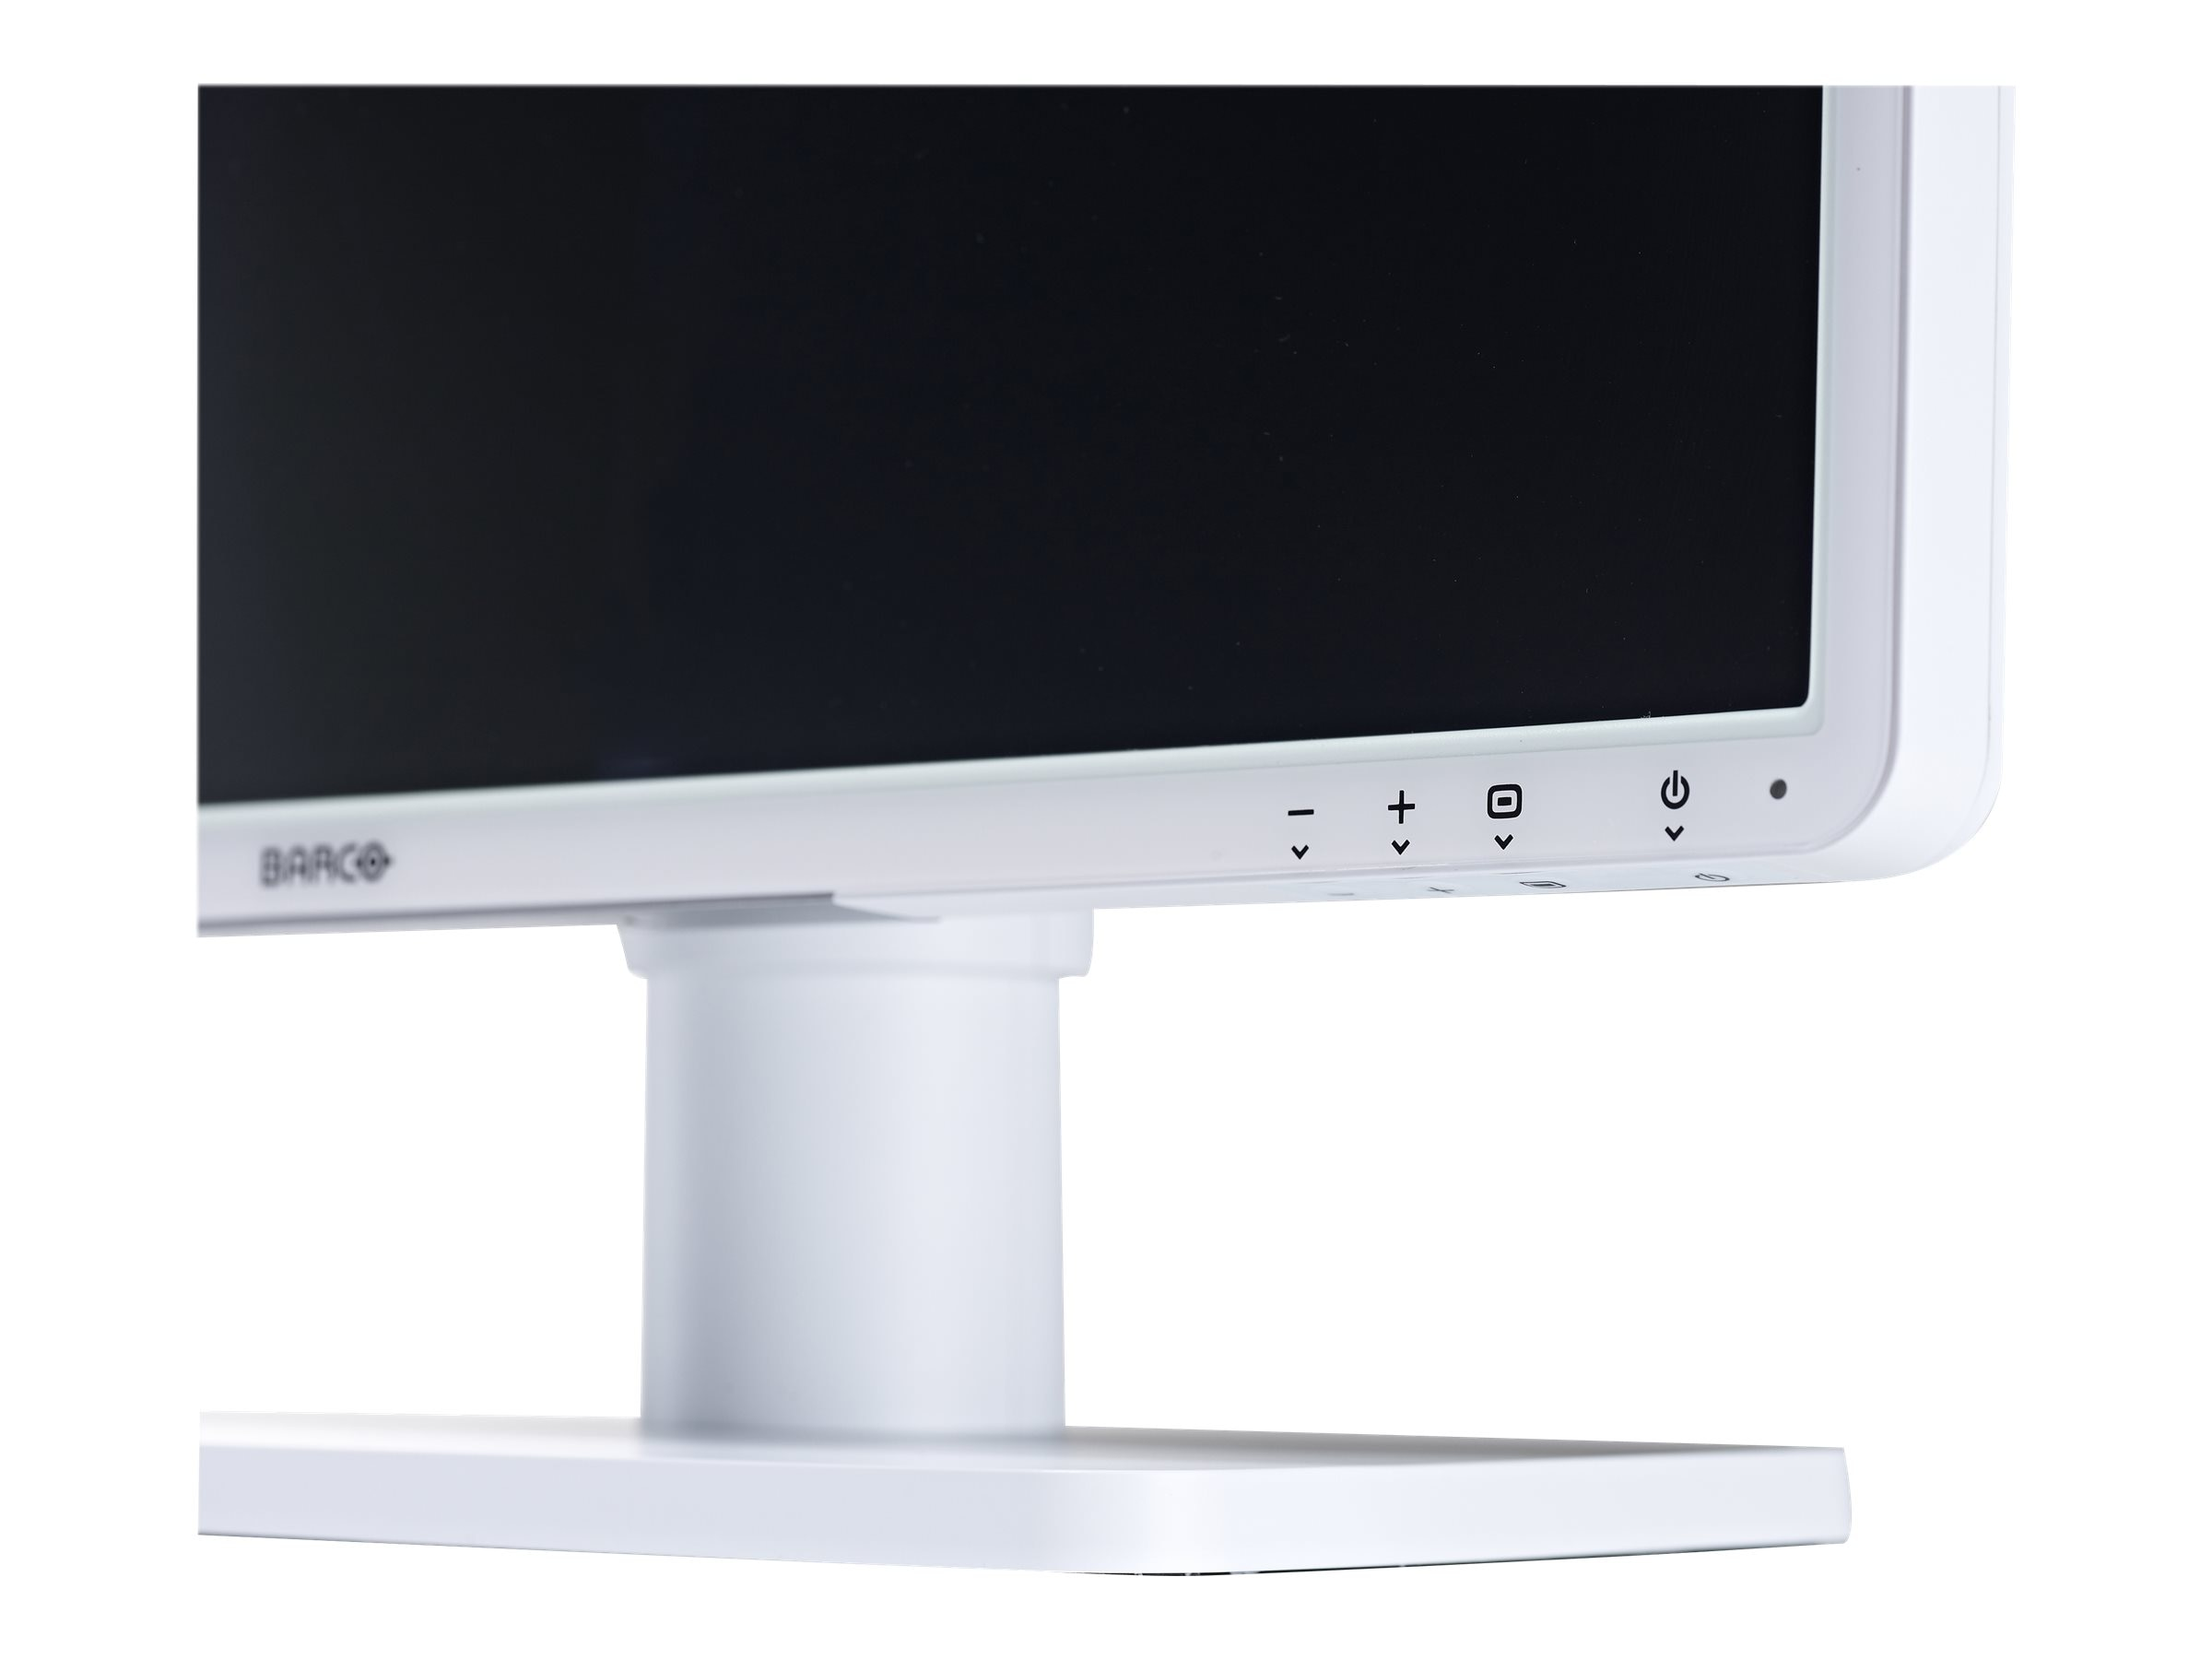 Barco 24.1 Eonis 2MP LED Medical Display, White, K9301807A